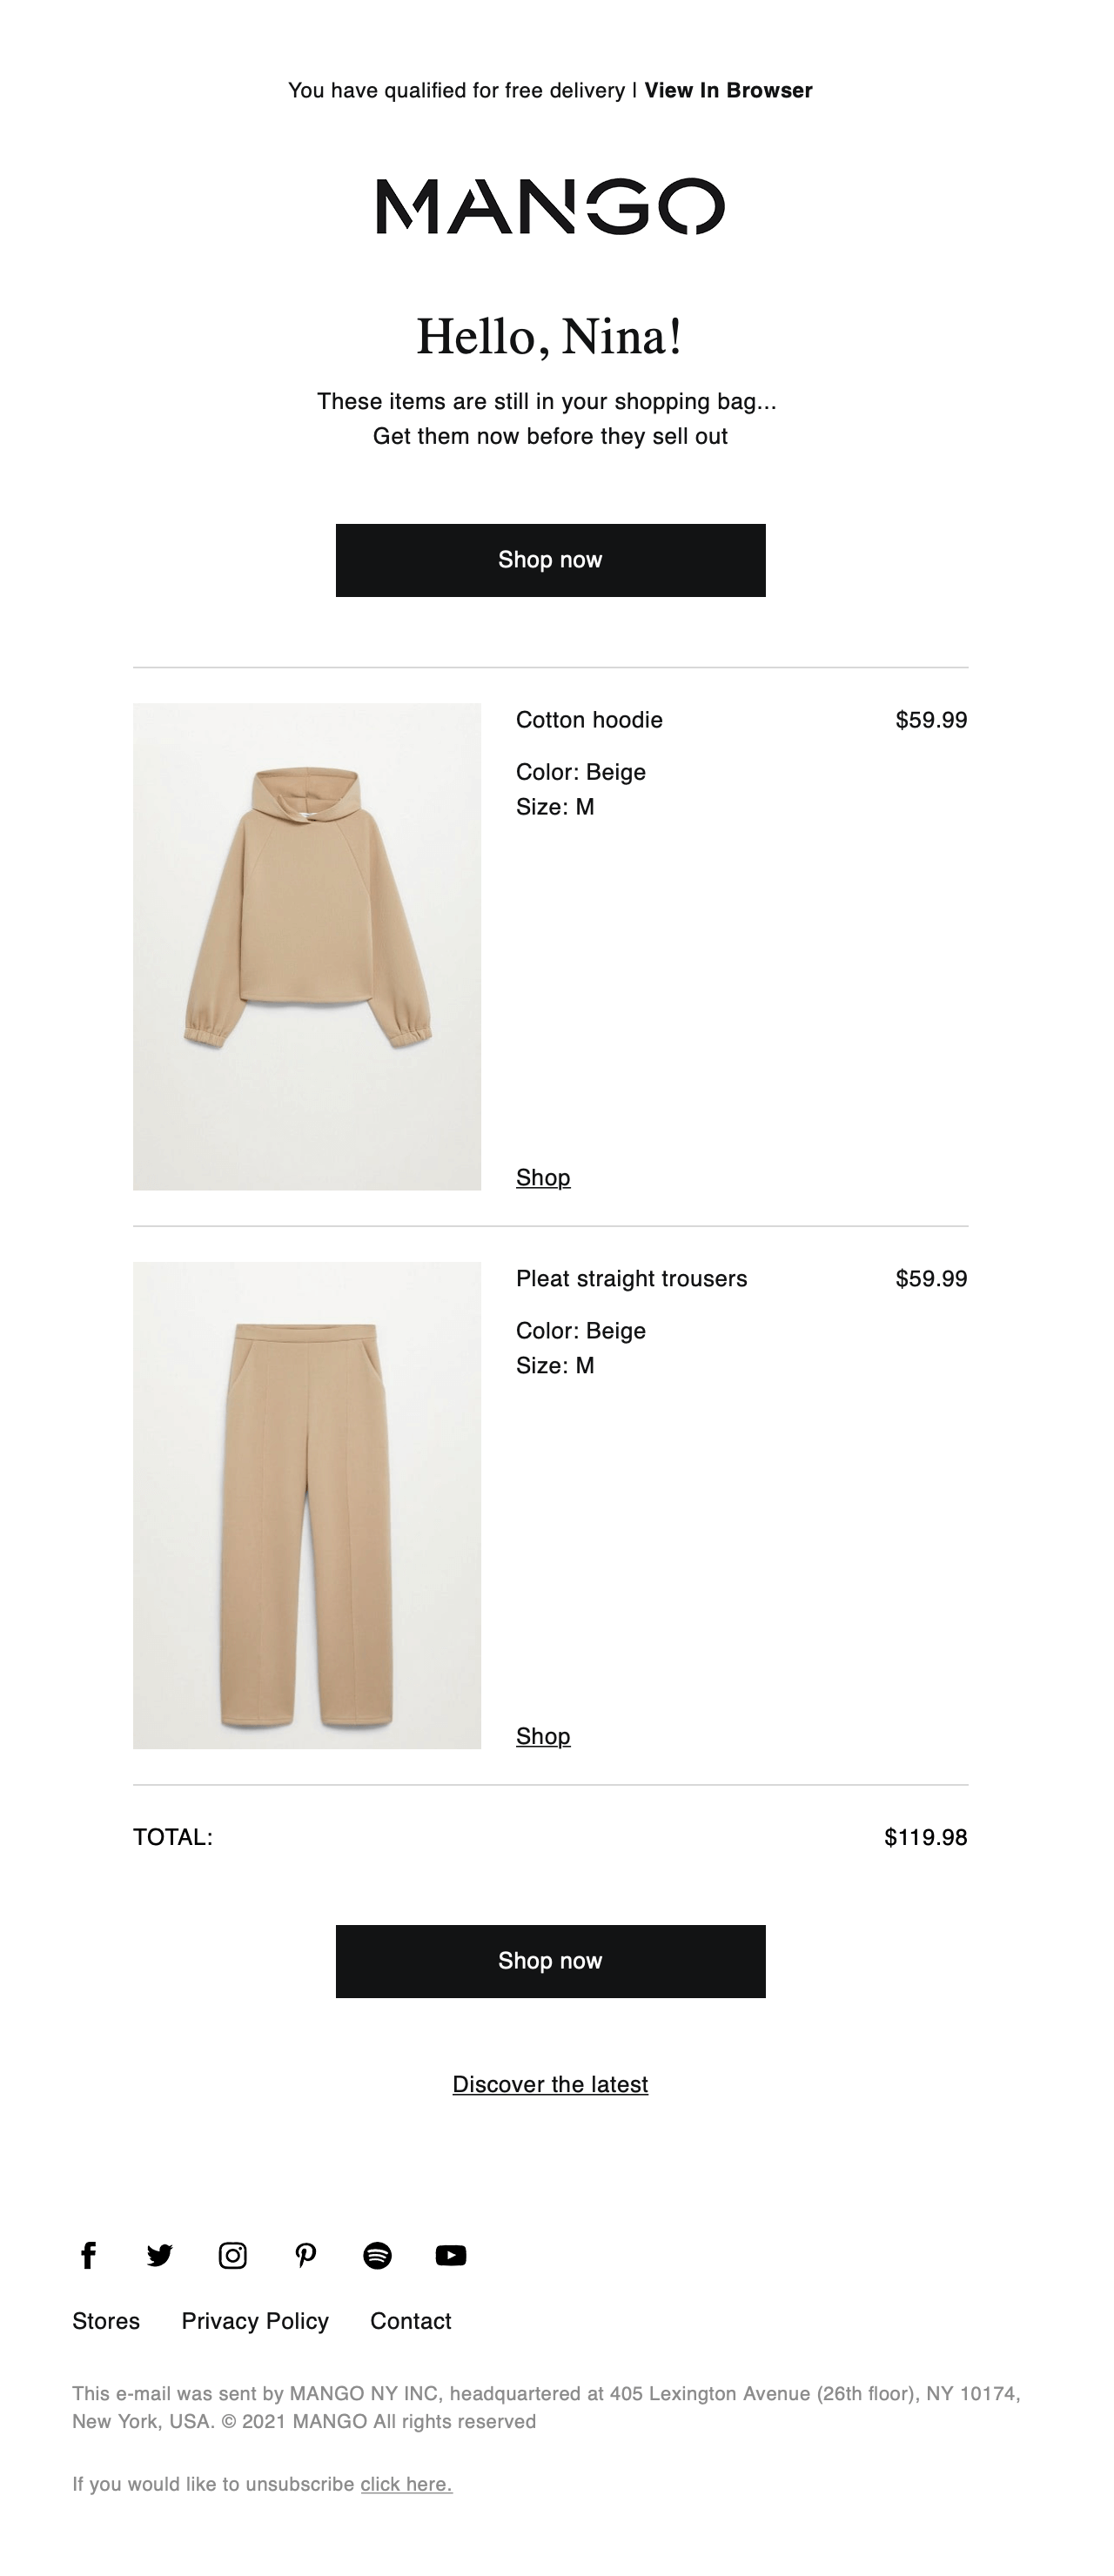 Mango uses the sense of urgency in their abandoned cart emails